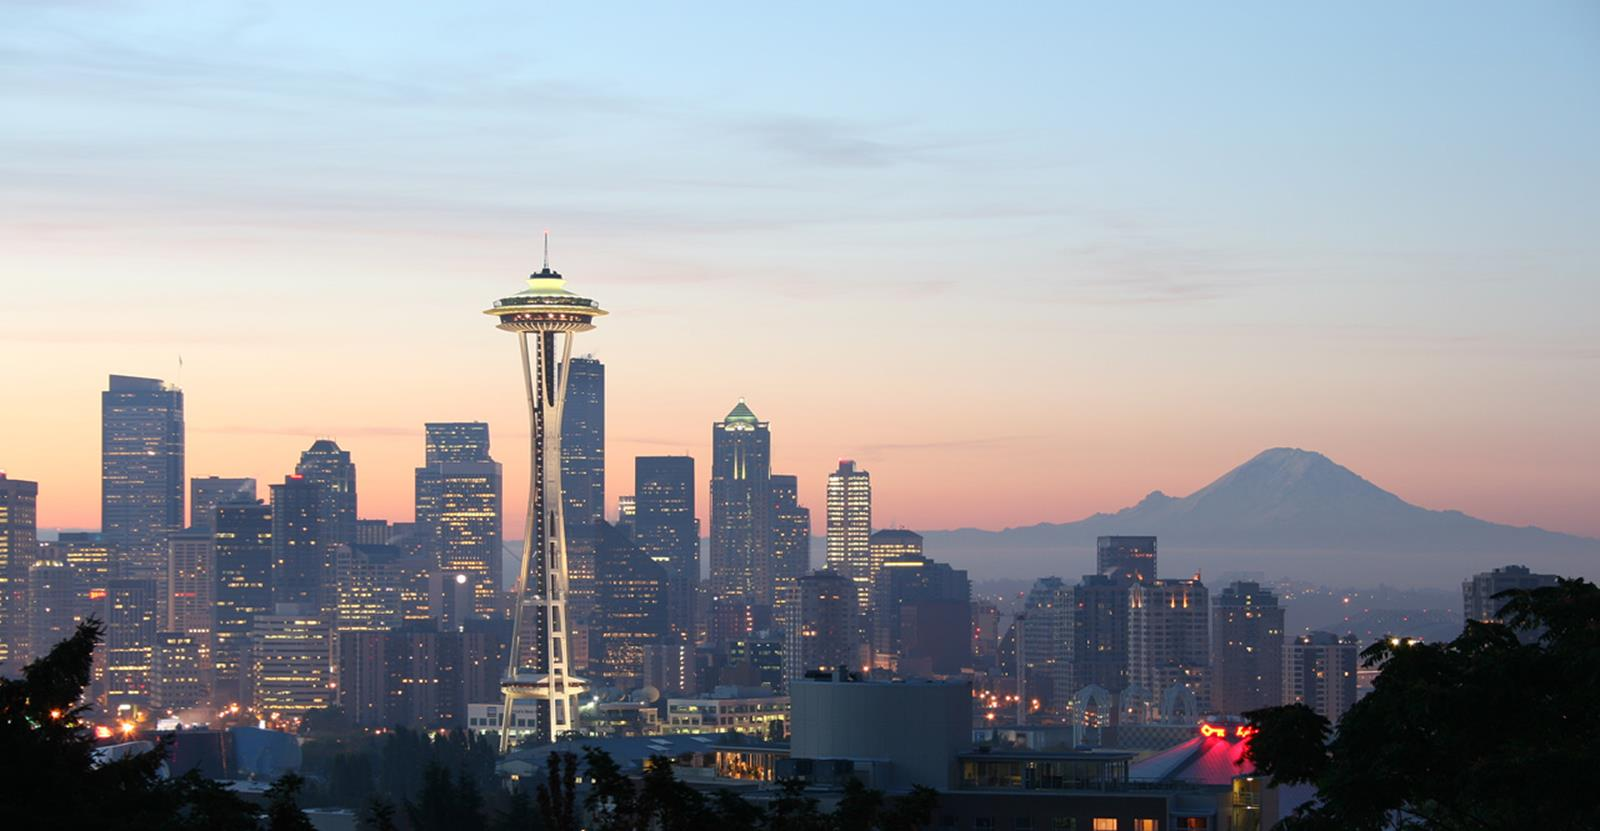 Space Needle at sunset. Credit Rattlhed at en.wikipedia